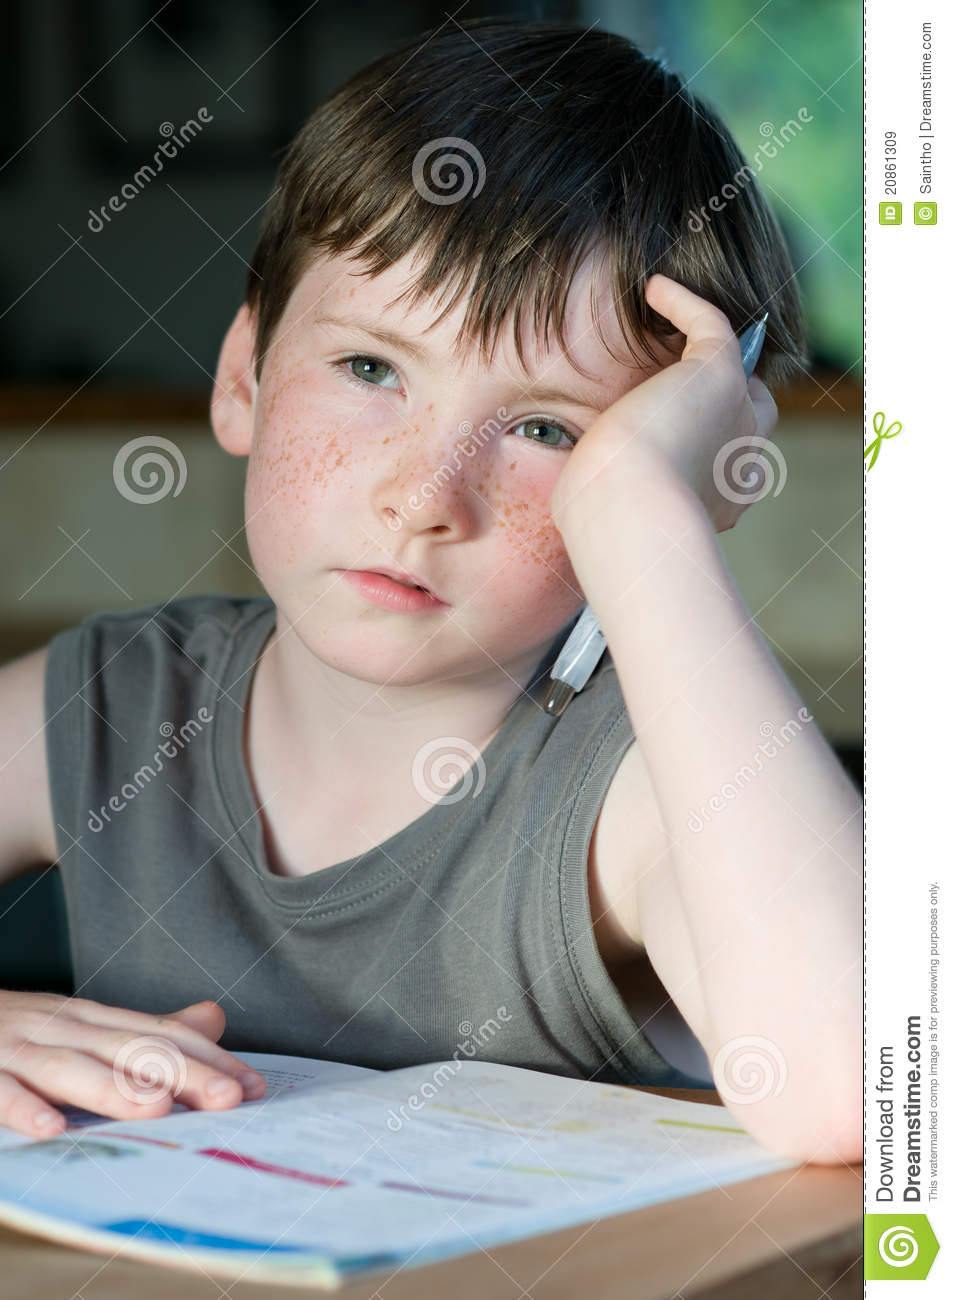 Young Boy With Freckle Royalty Free Stock Images - Image ...